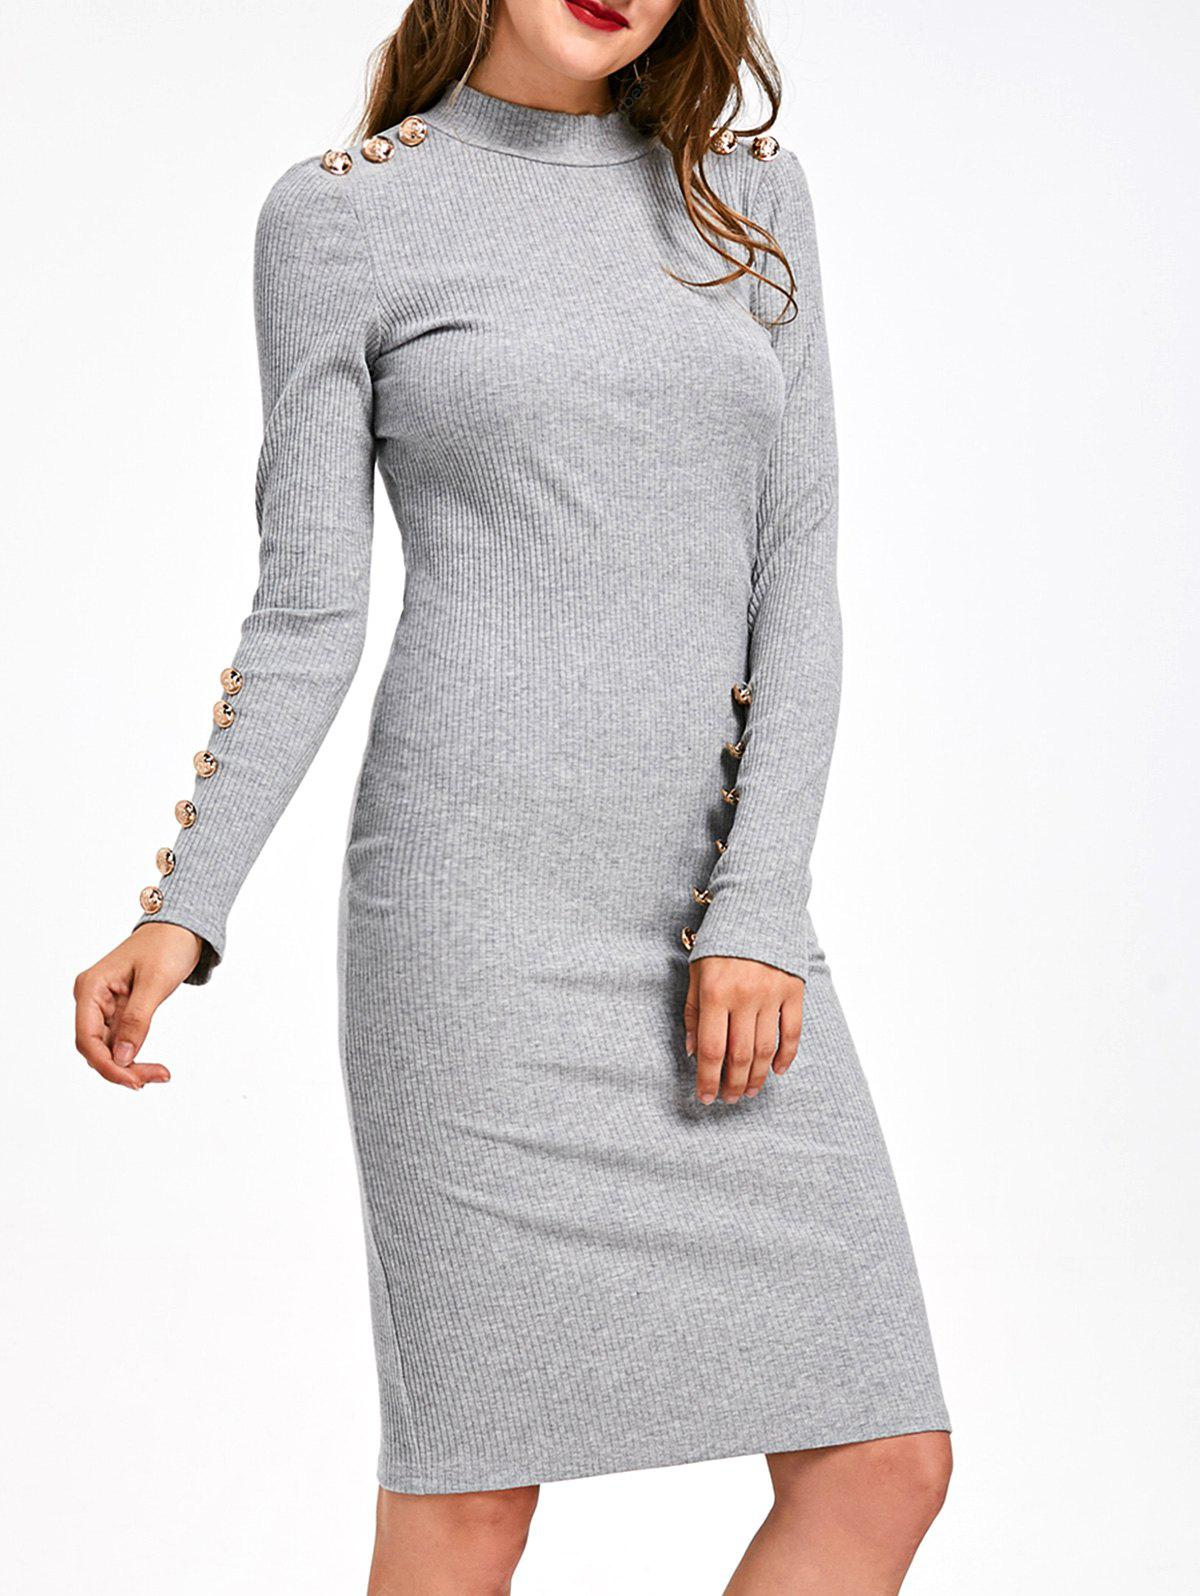 Tanga a coste abbellito Longcontainer Bodycon Dress